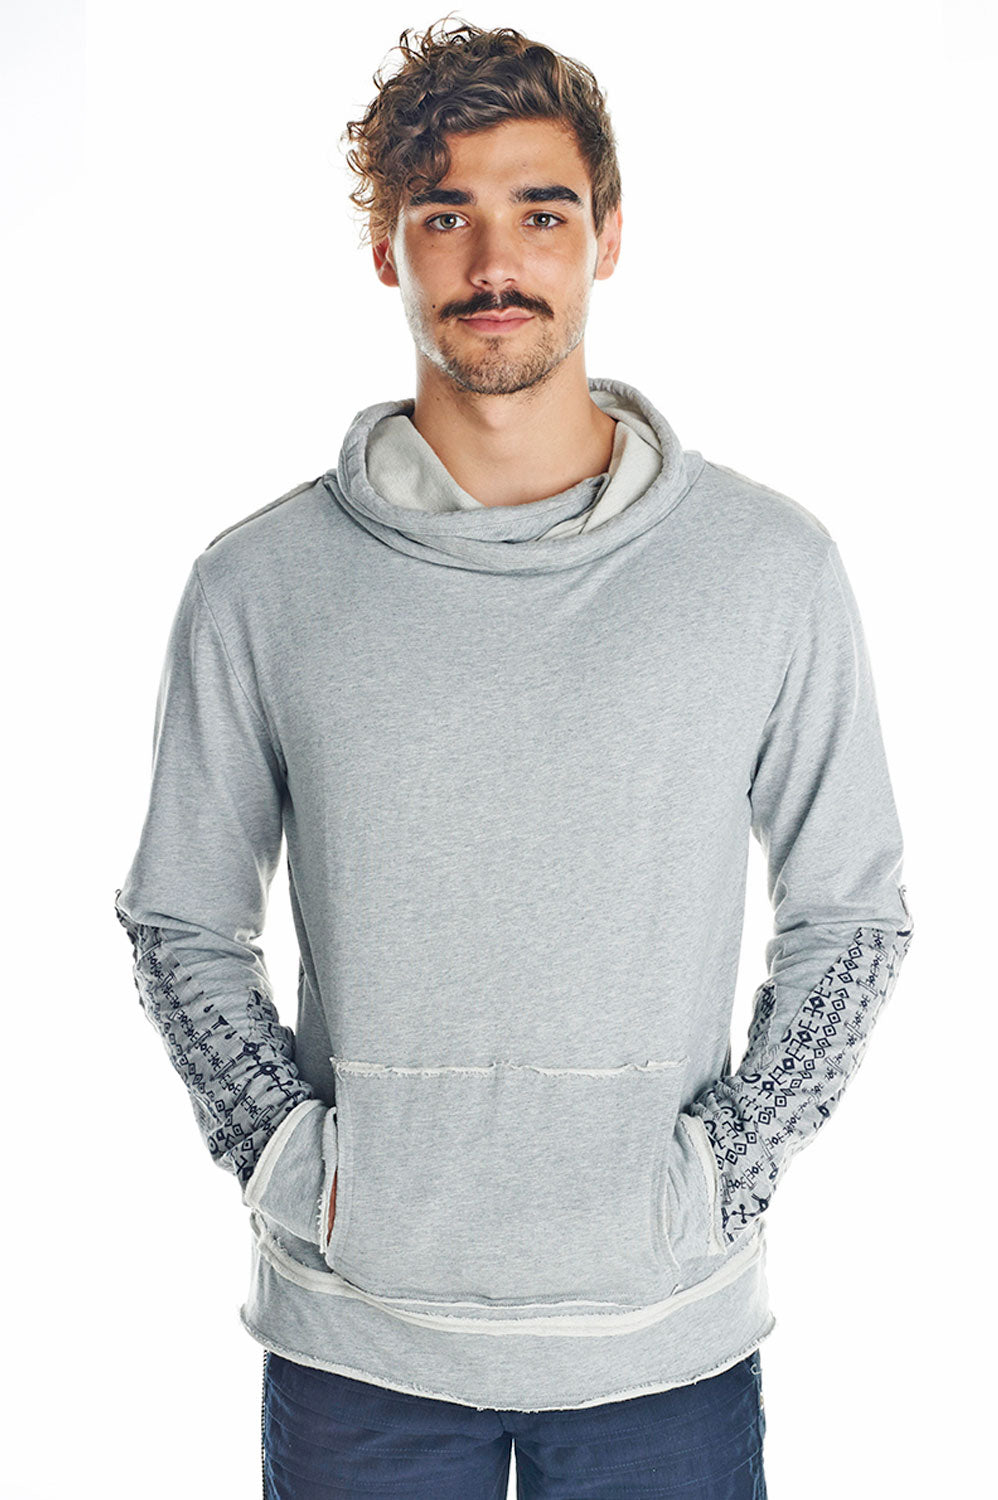 SAMADHI LONG SLEEVE TOP